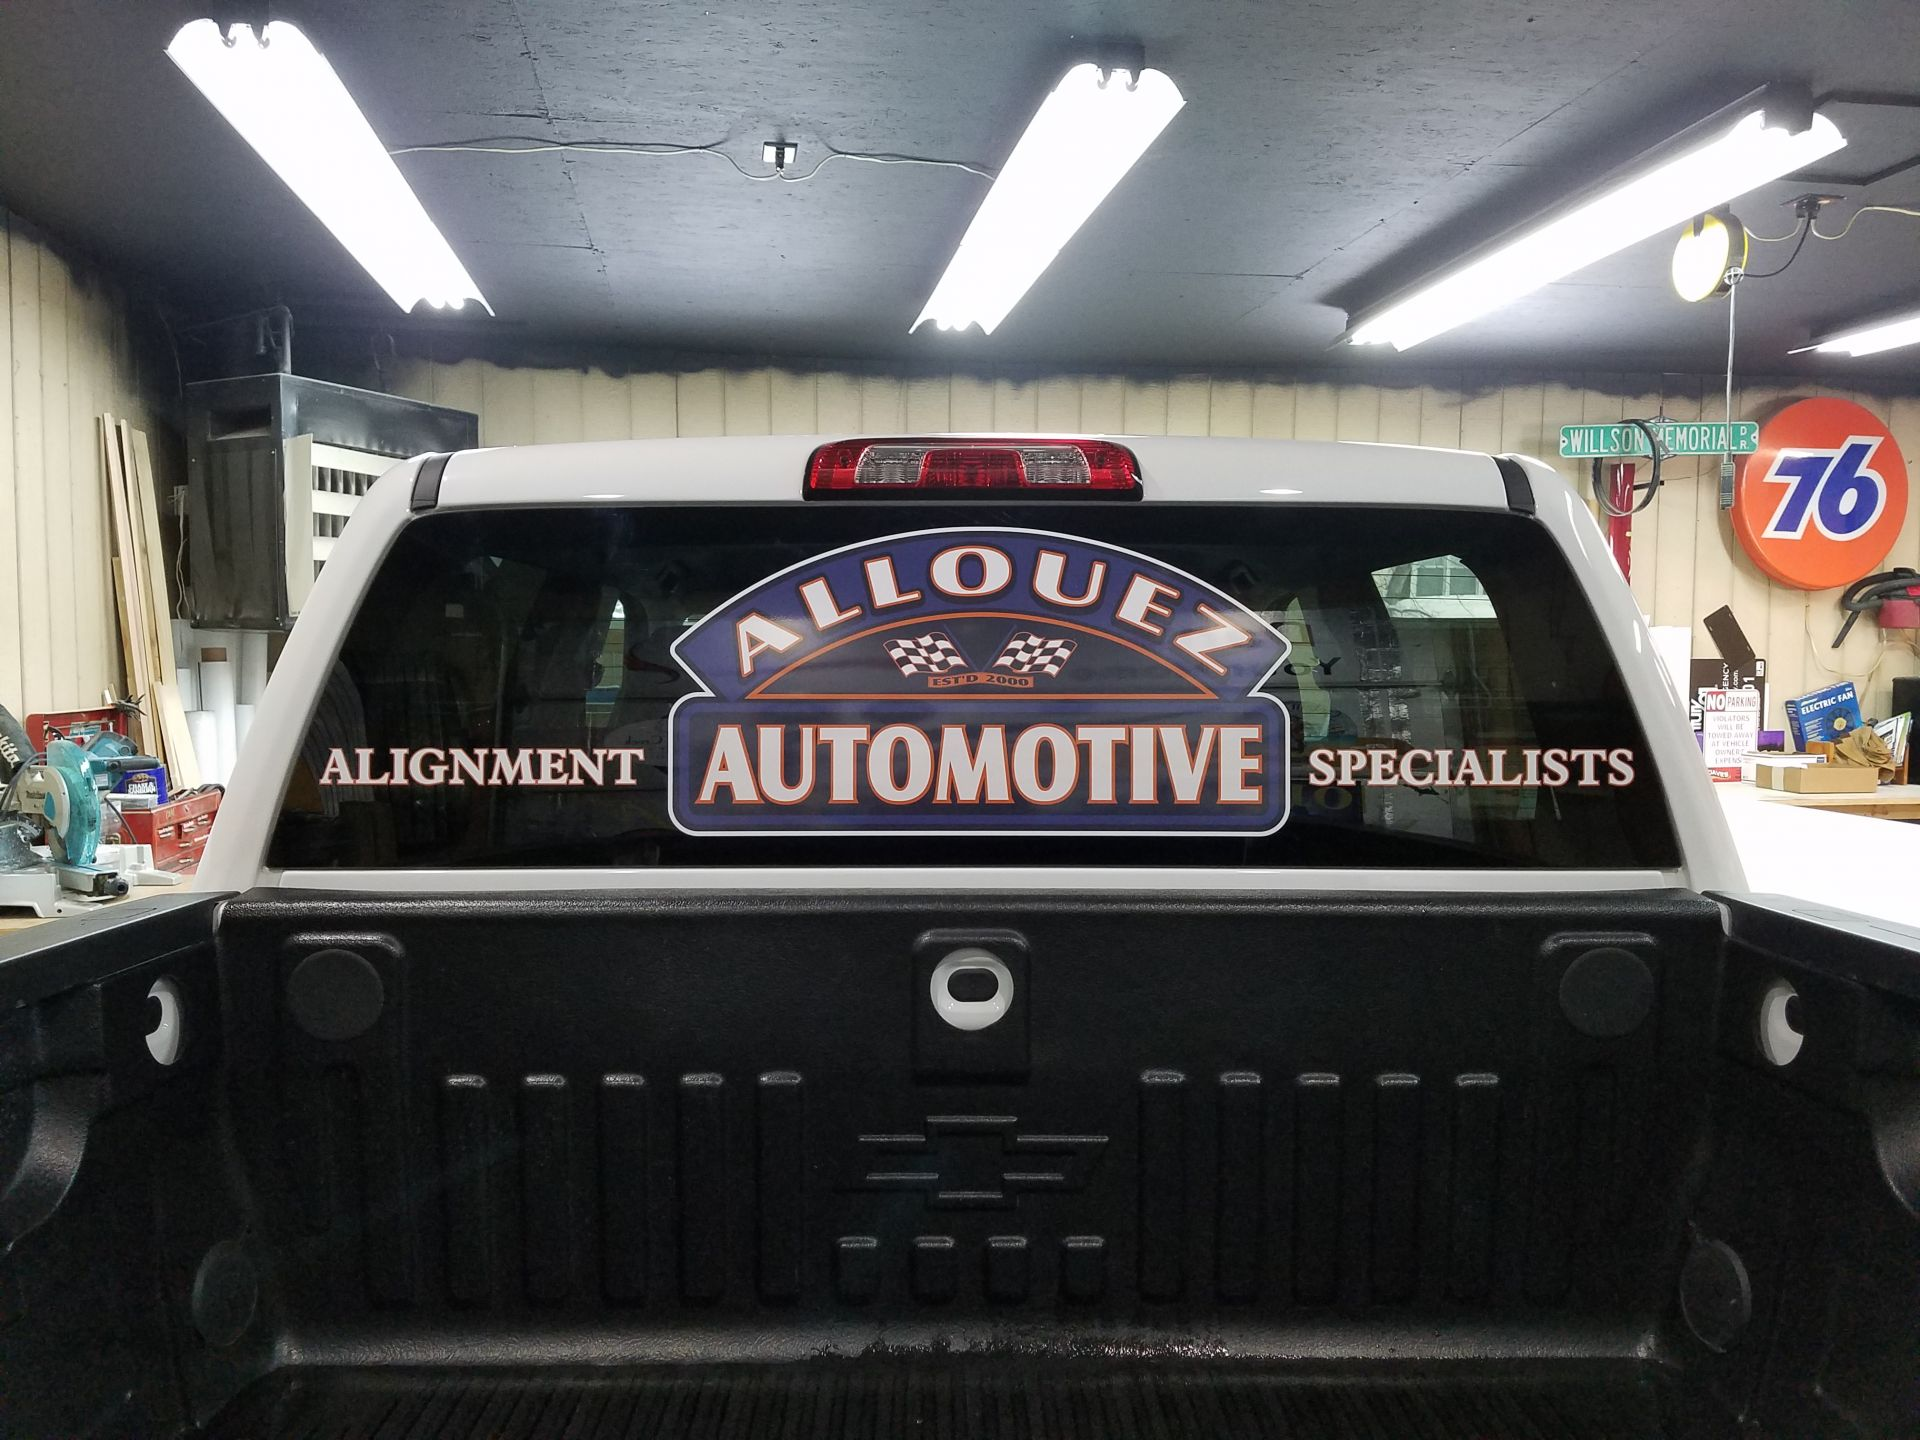 Allouez Automotive Alignment Specialists Window Decal